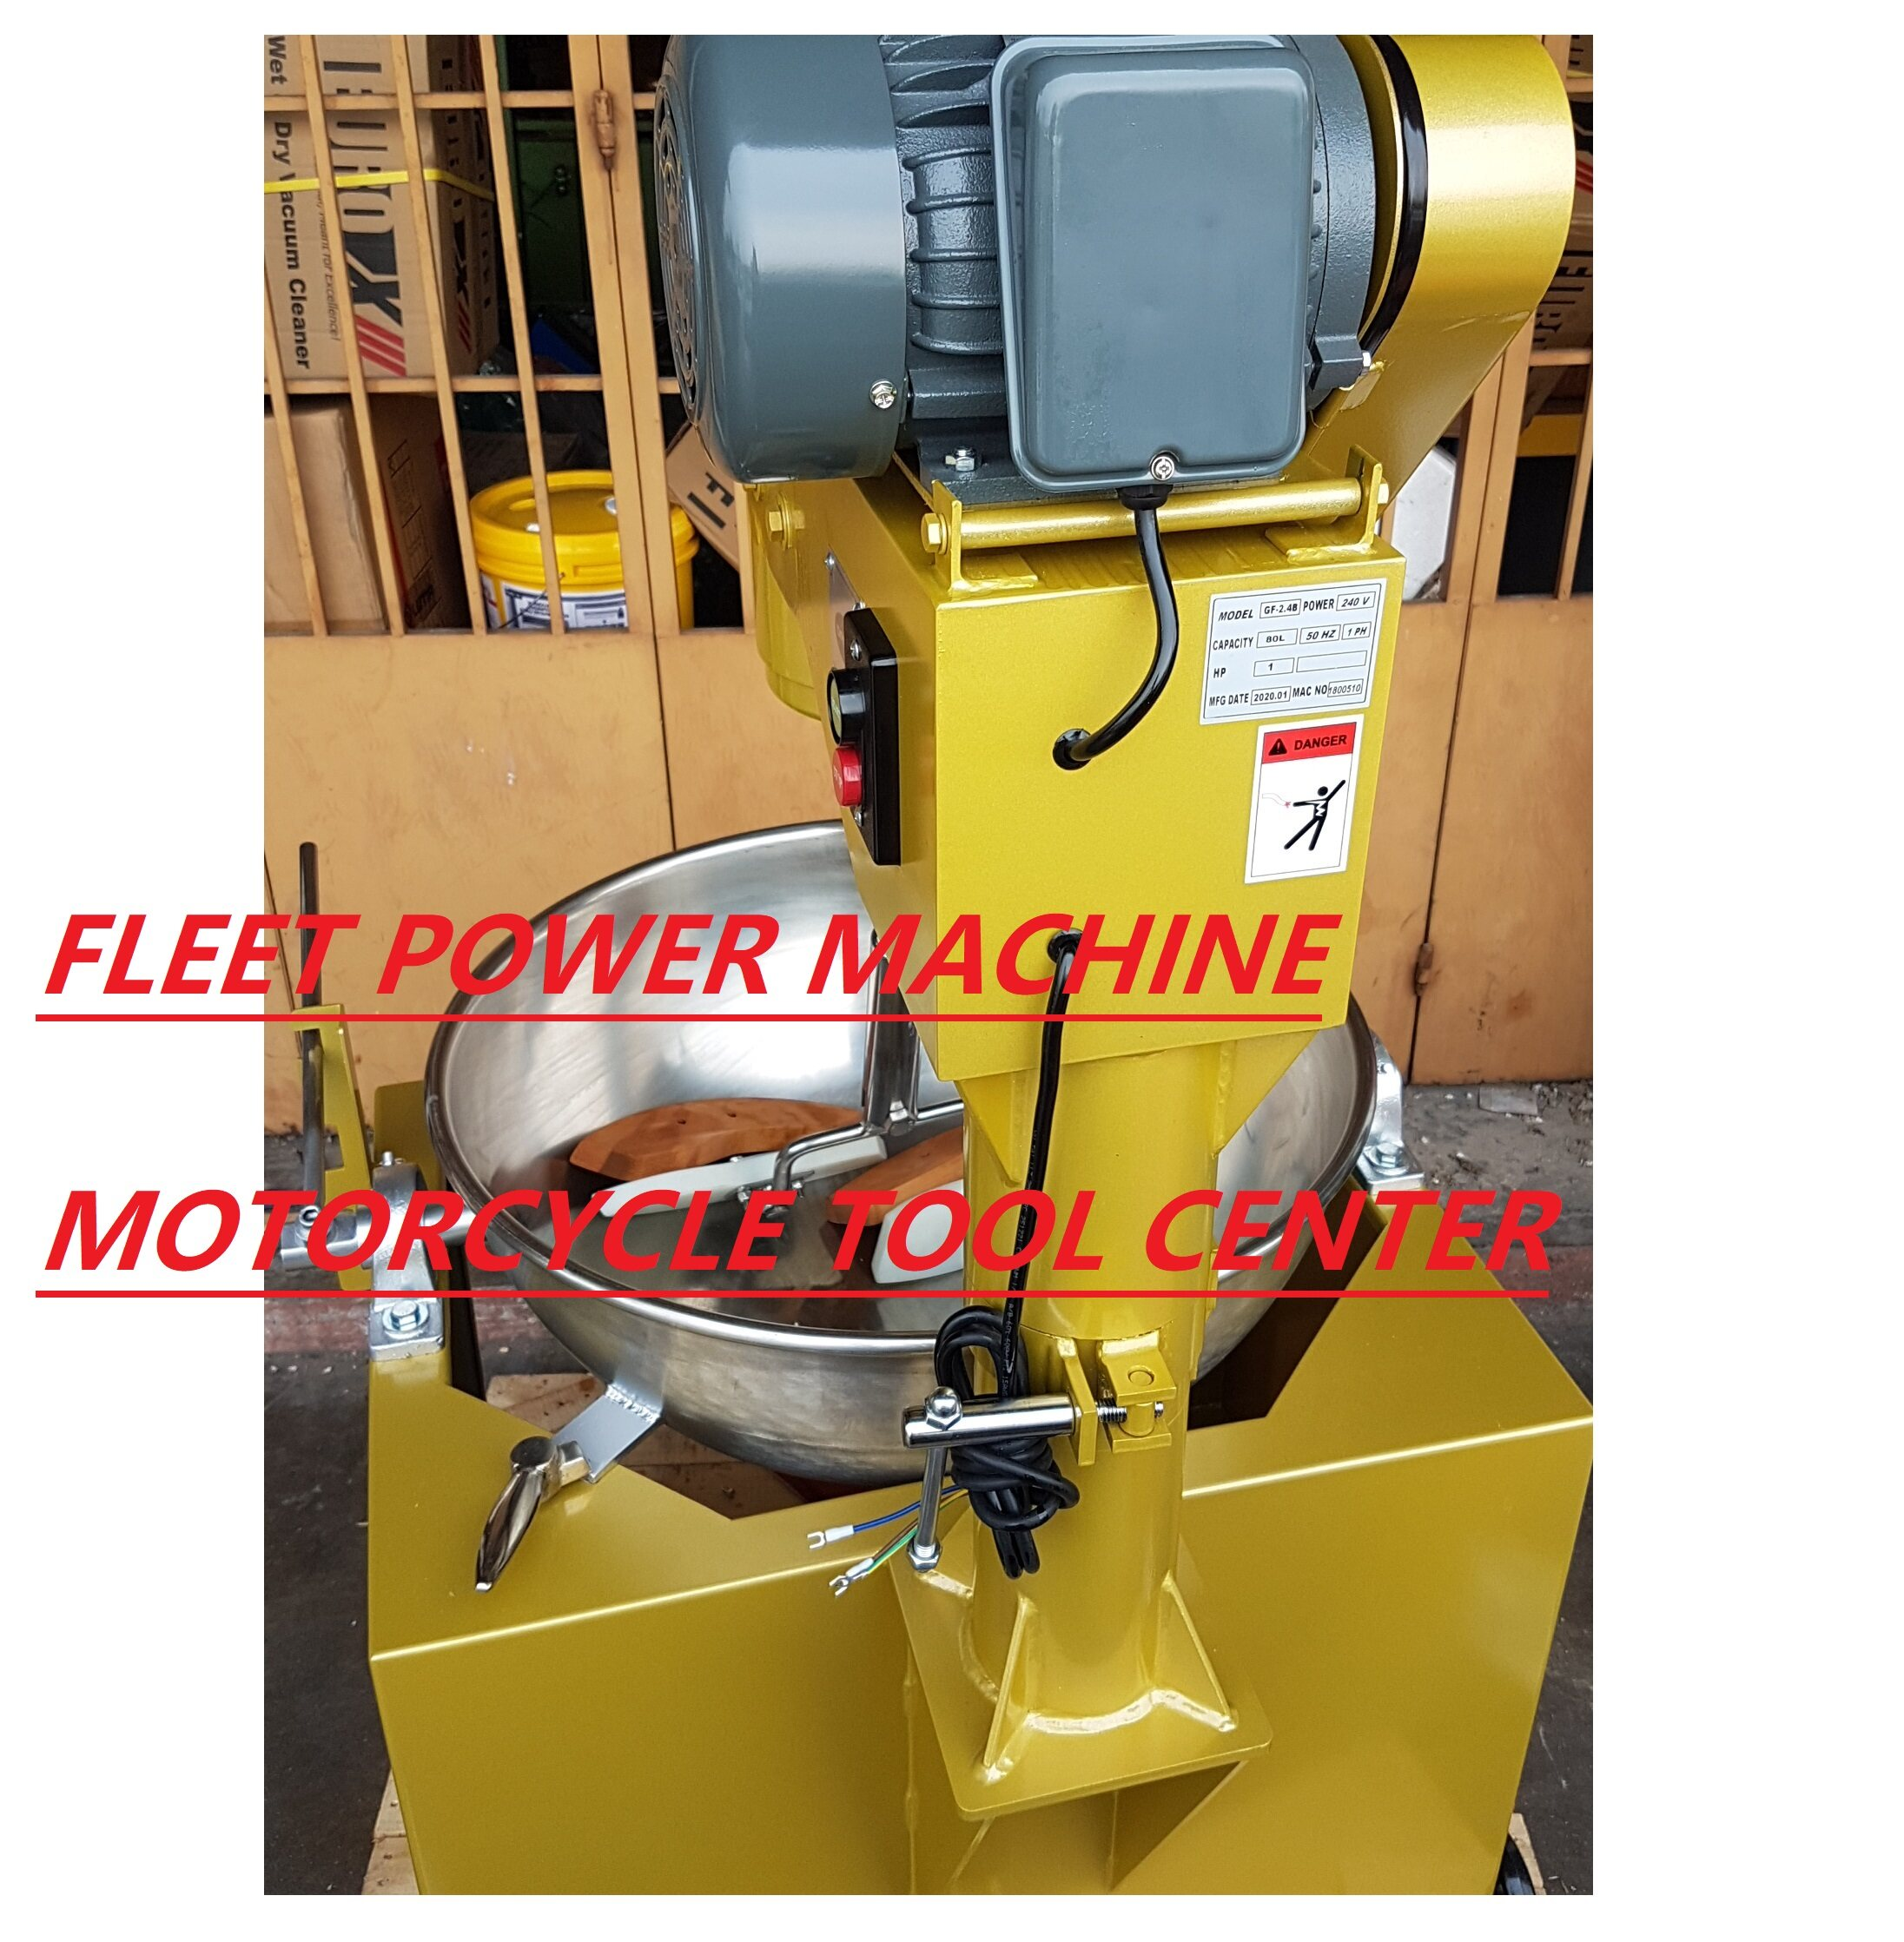 industrial heavy duty cooker cooking mixer mix mixing boiler fry boiling gear plate blade big bowl roll roller rolling handle gas fire stove motor automatic auto electric tilting tilt single layer stirrer stir wheel power fryer tank container box pan wok